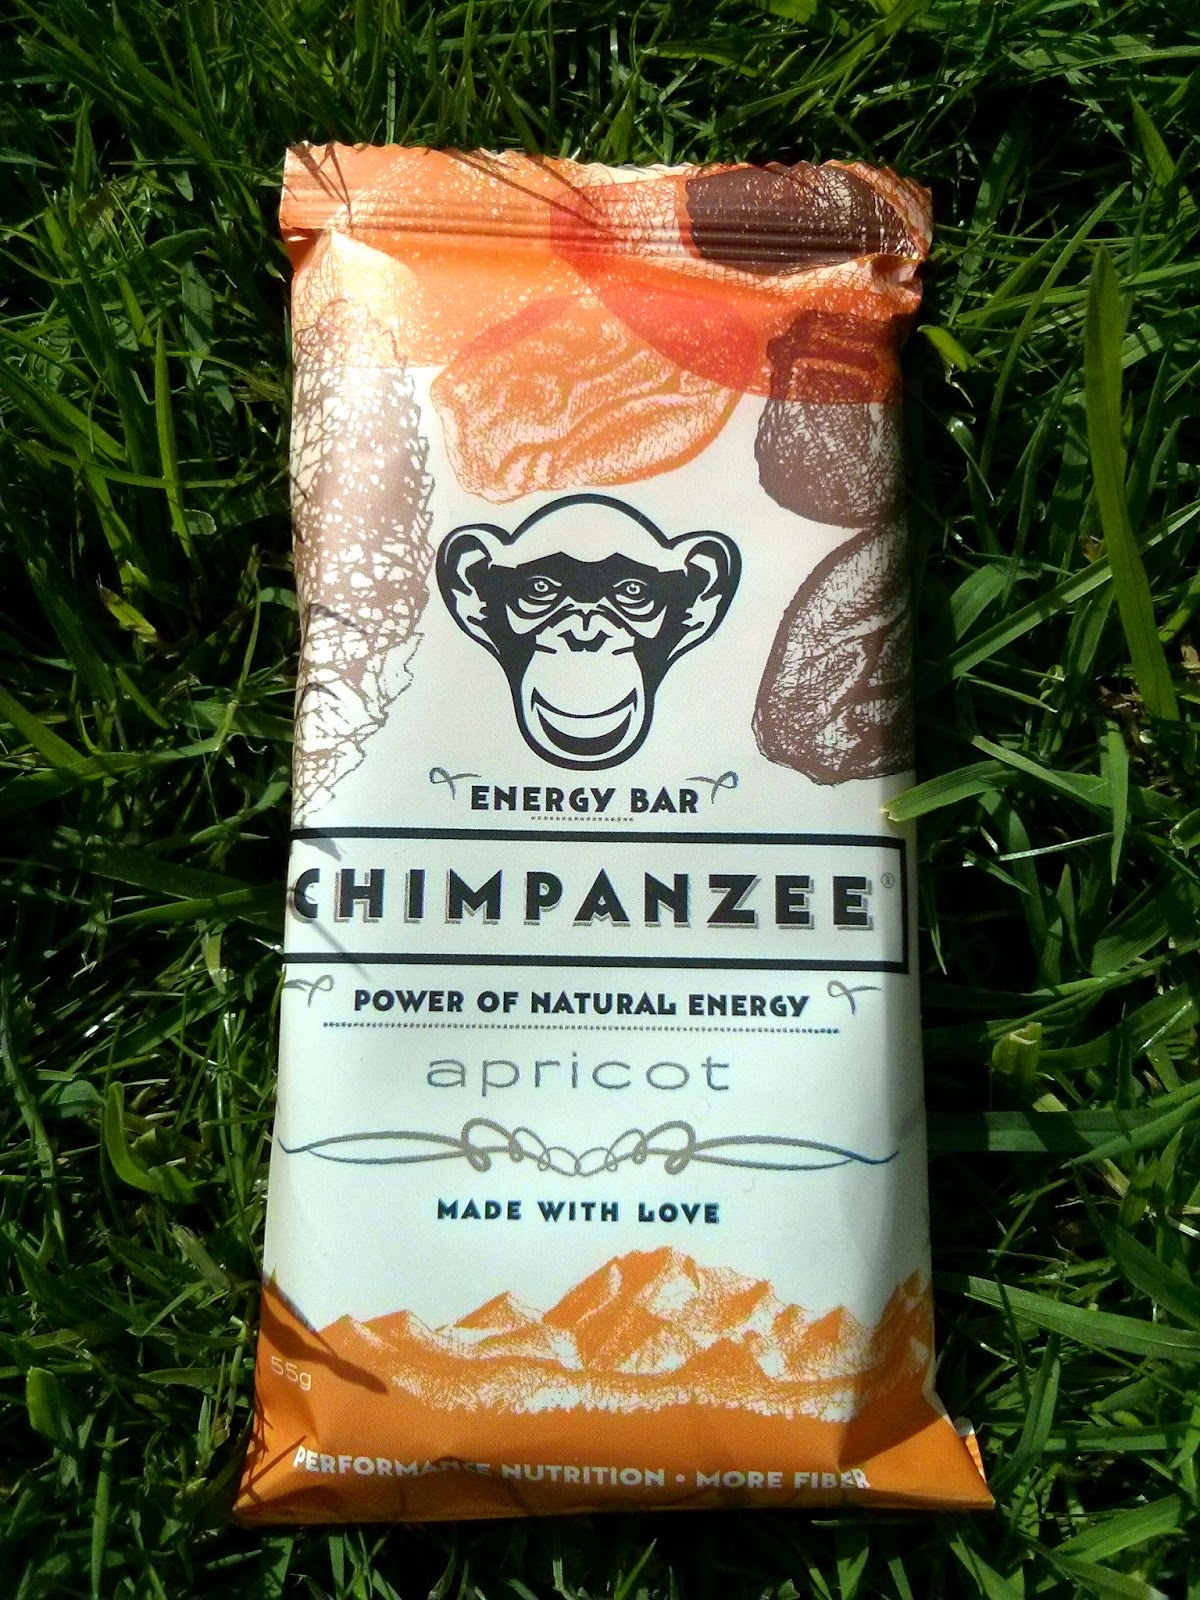 Chimpanzee, Vegan Tuck Box